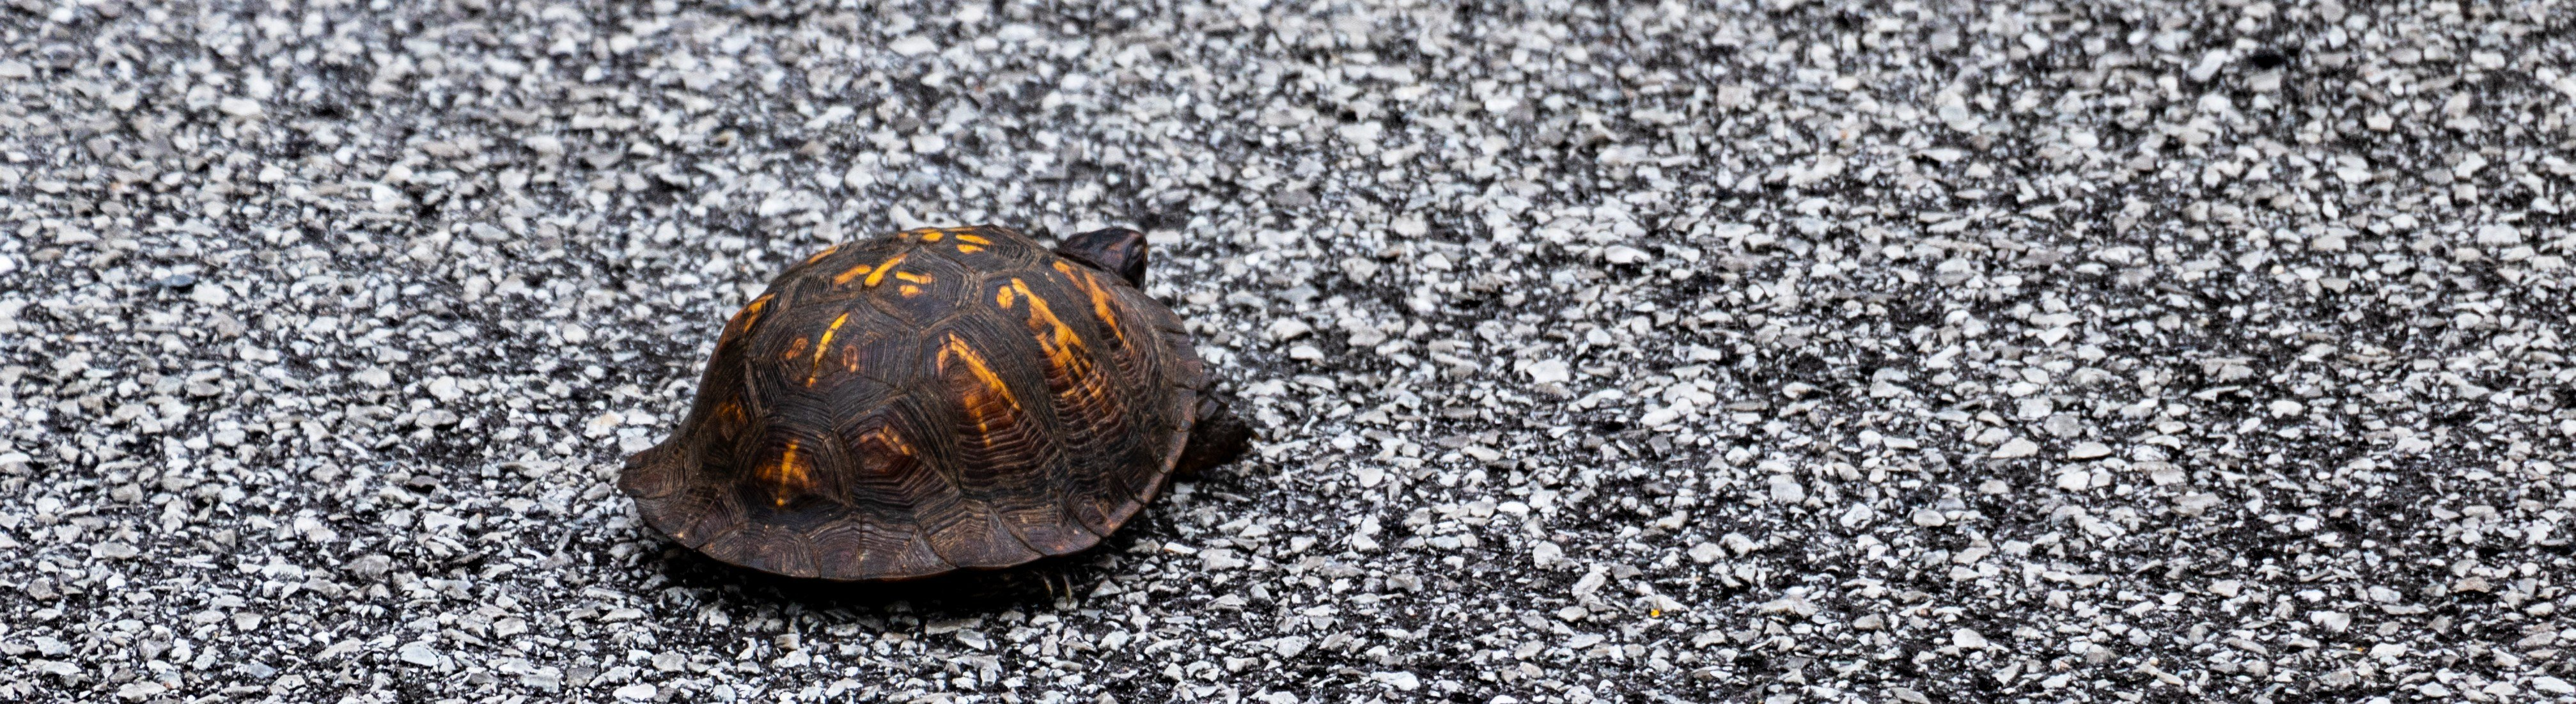 This asphalt probably isn't the most ideal place to jump rope, not just because there's a turtle there.